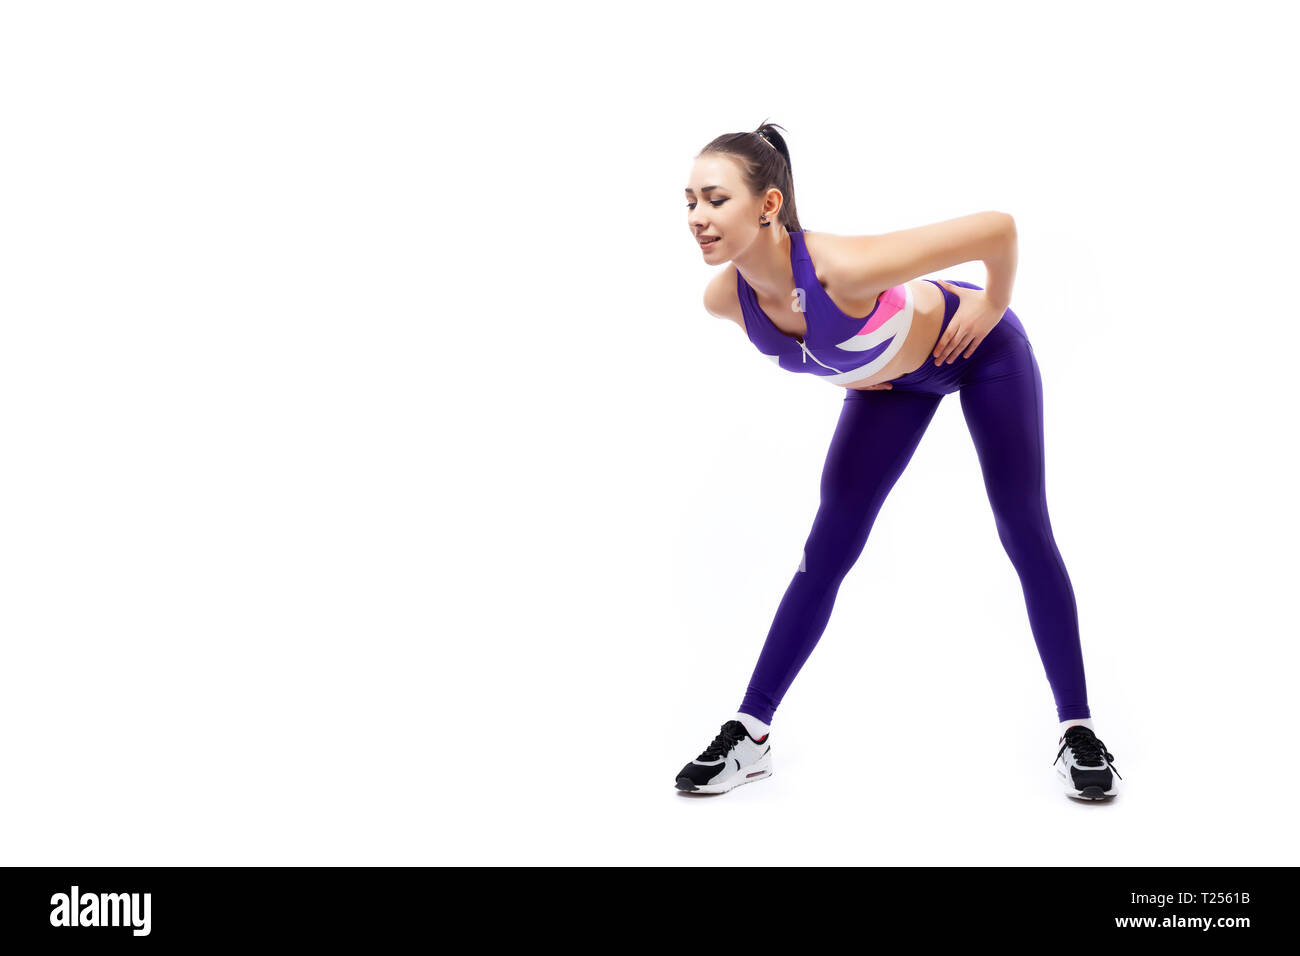 A dark-haired woman coach in a sporty purple  short top and gym leggings shows the correct technique of tilting forward for inflating the buttocks on  - Stock Image